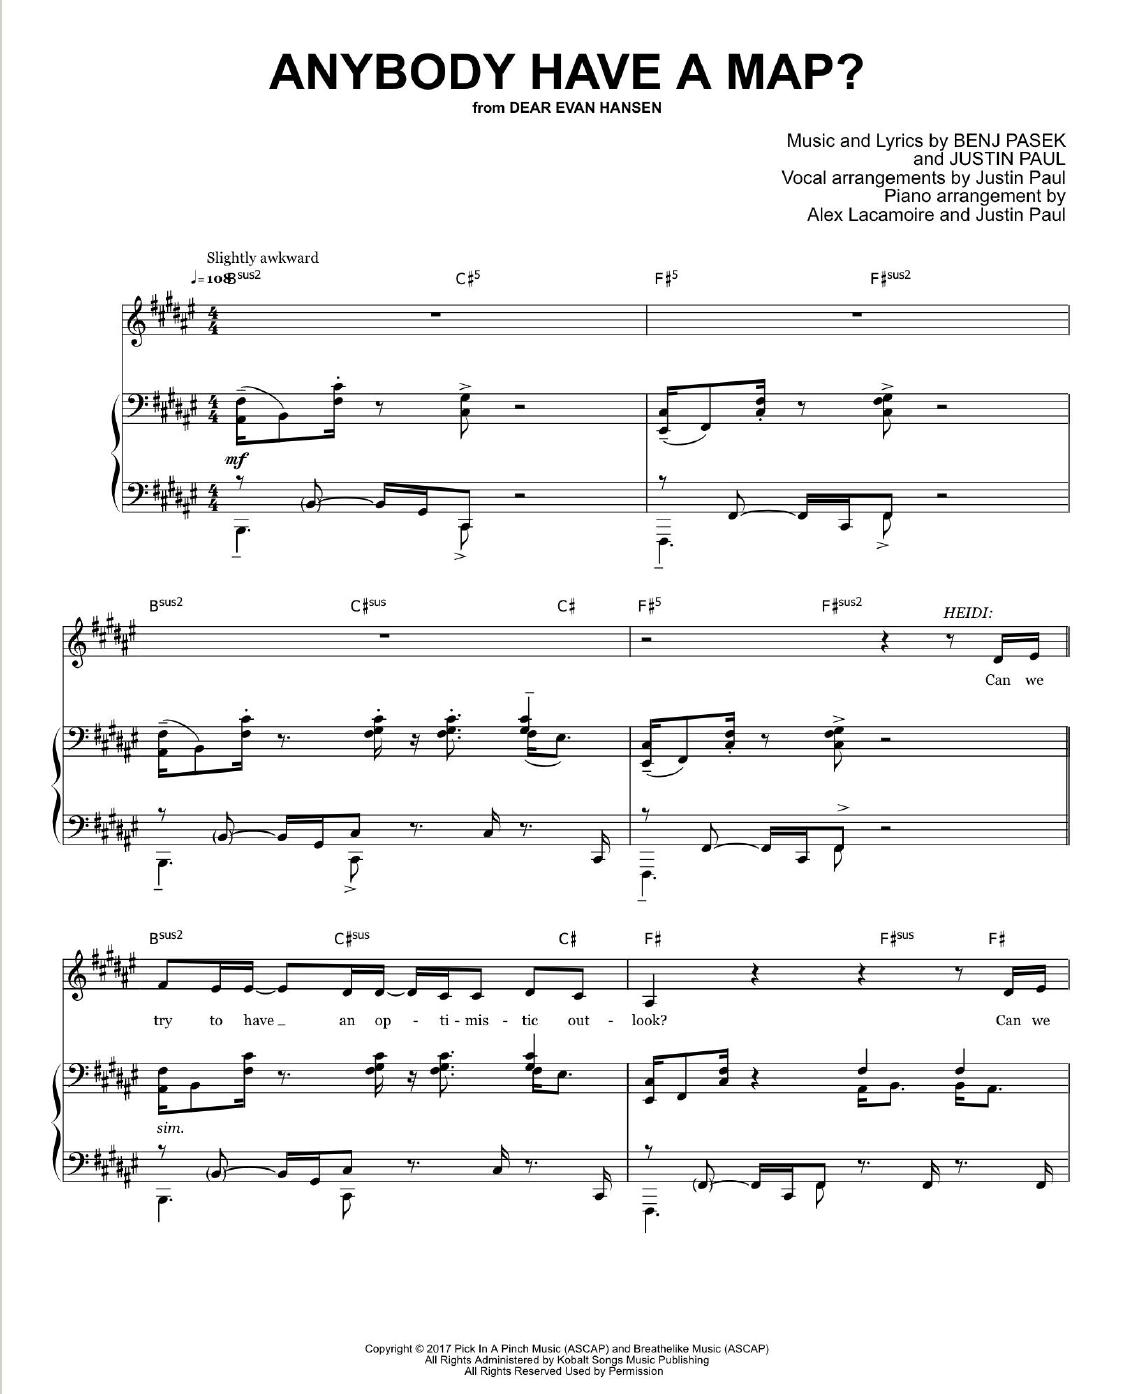 Dear Evan Hansen Pdf Sheet Music